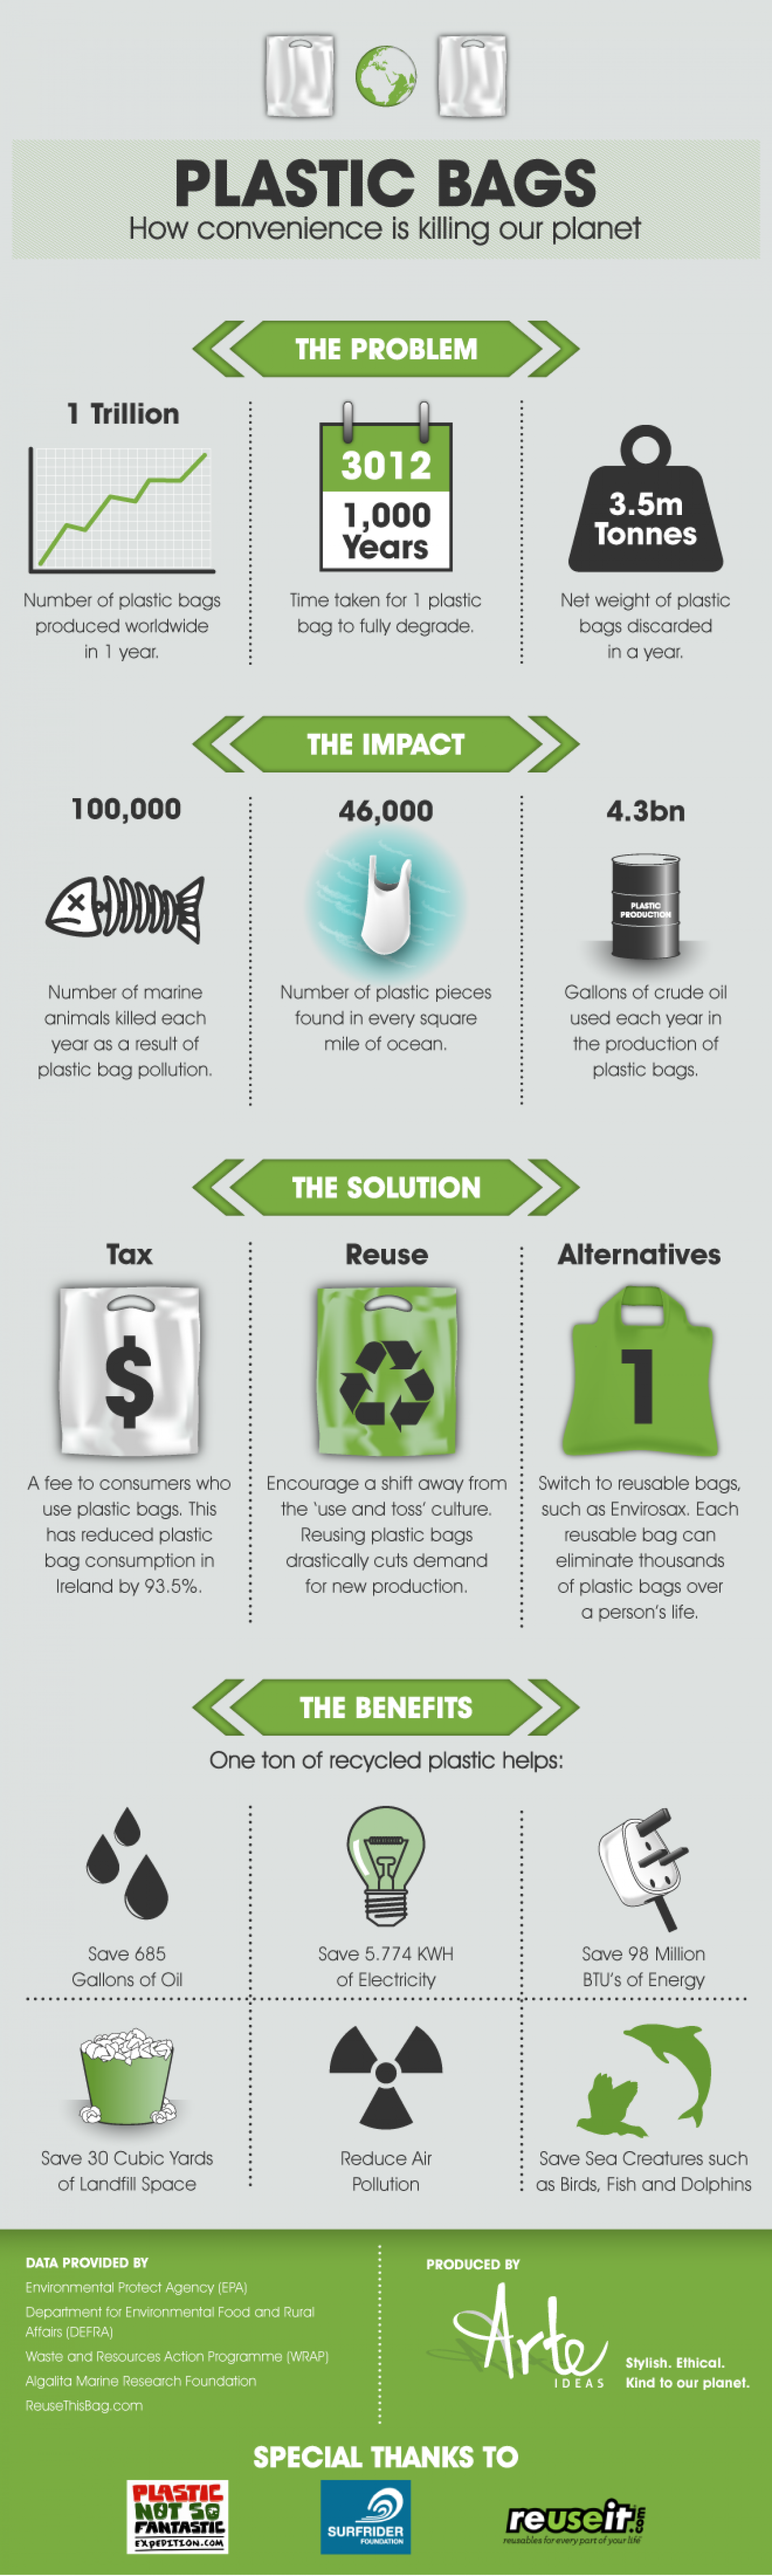 How Convenience is Killing Our Planet Infographic